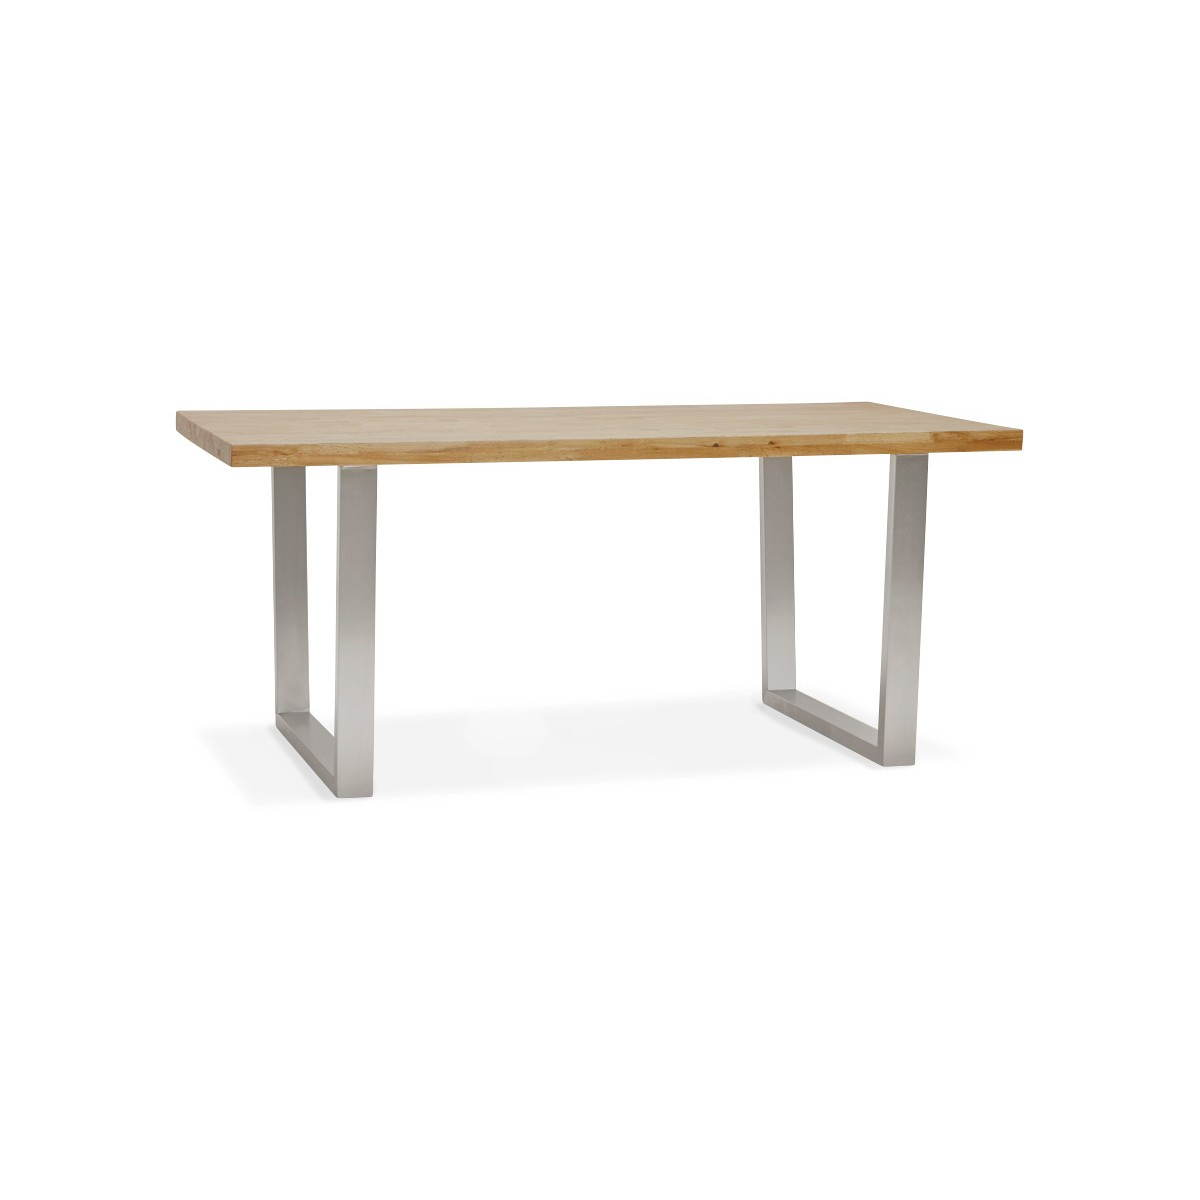 Table moderne rectangulaire panou en ch ne massif bois naturel fran ais french - Table moderne bois ...